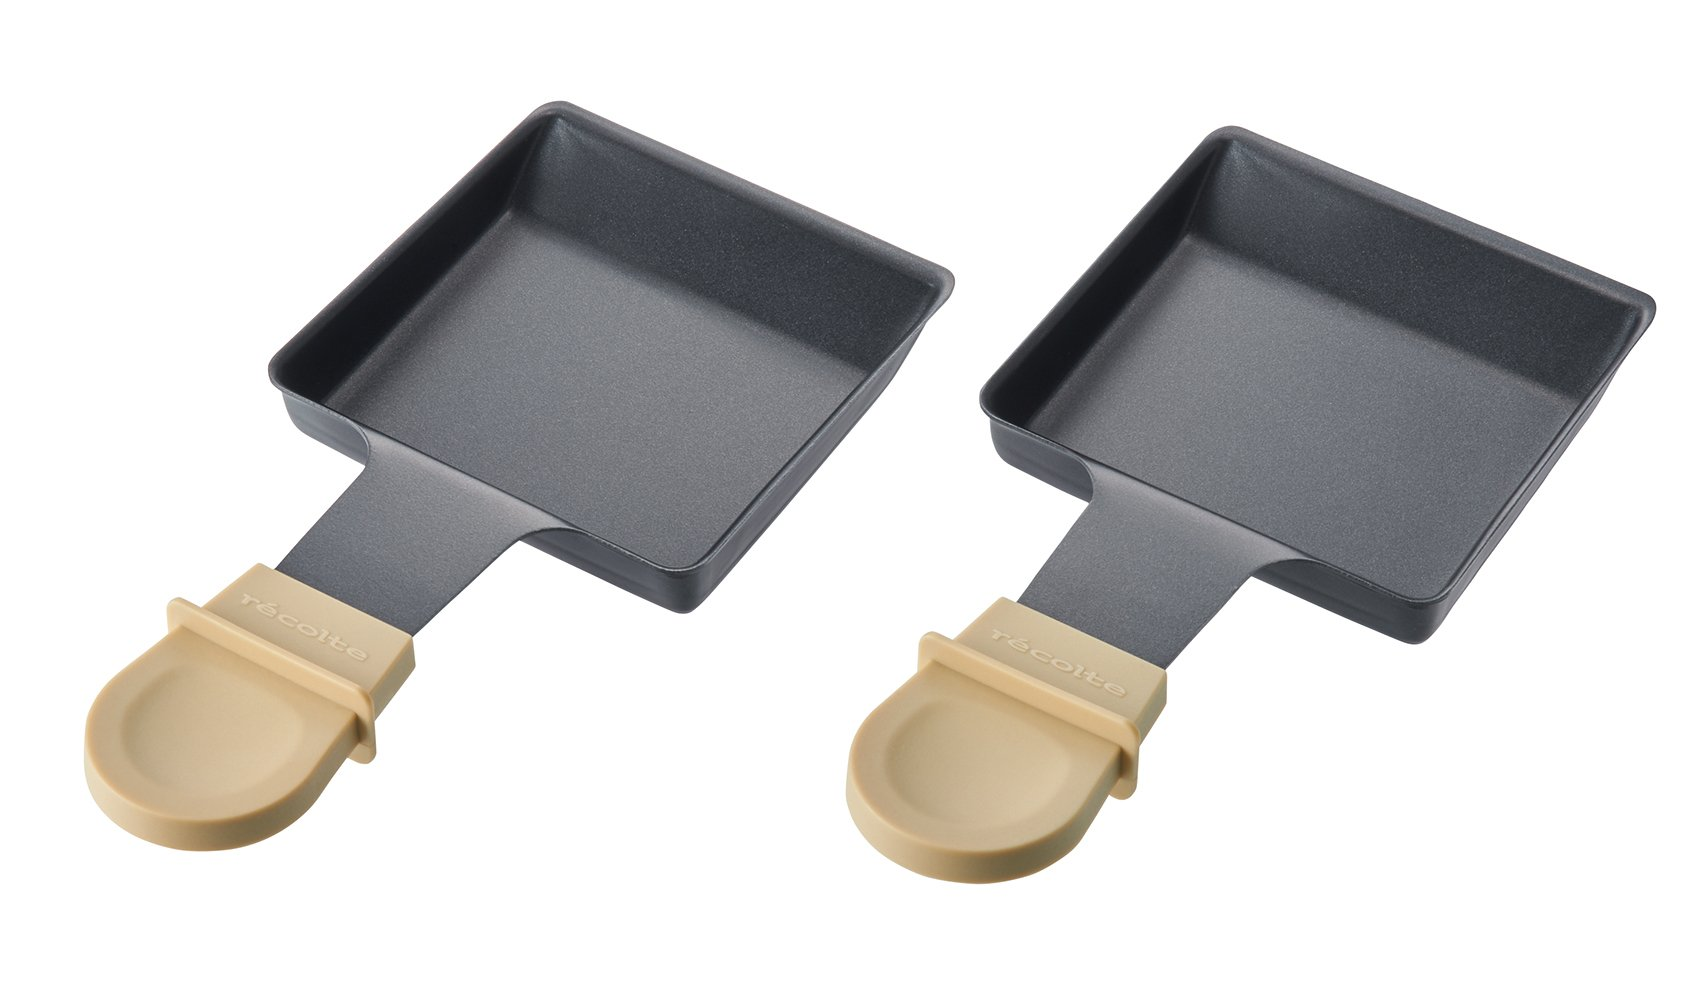 recolte''Raclette & Fondue Maker Melt'' (Beige) RRF-1(BE)【Japan Domestic Genuine Products】【Ships from Japan】 by Recolte (Image #5)